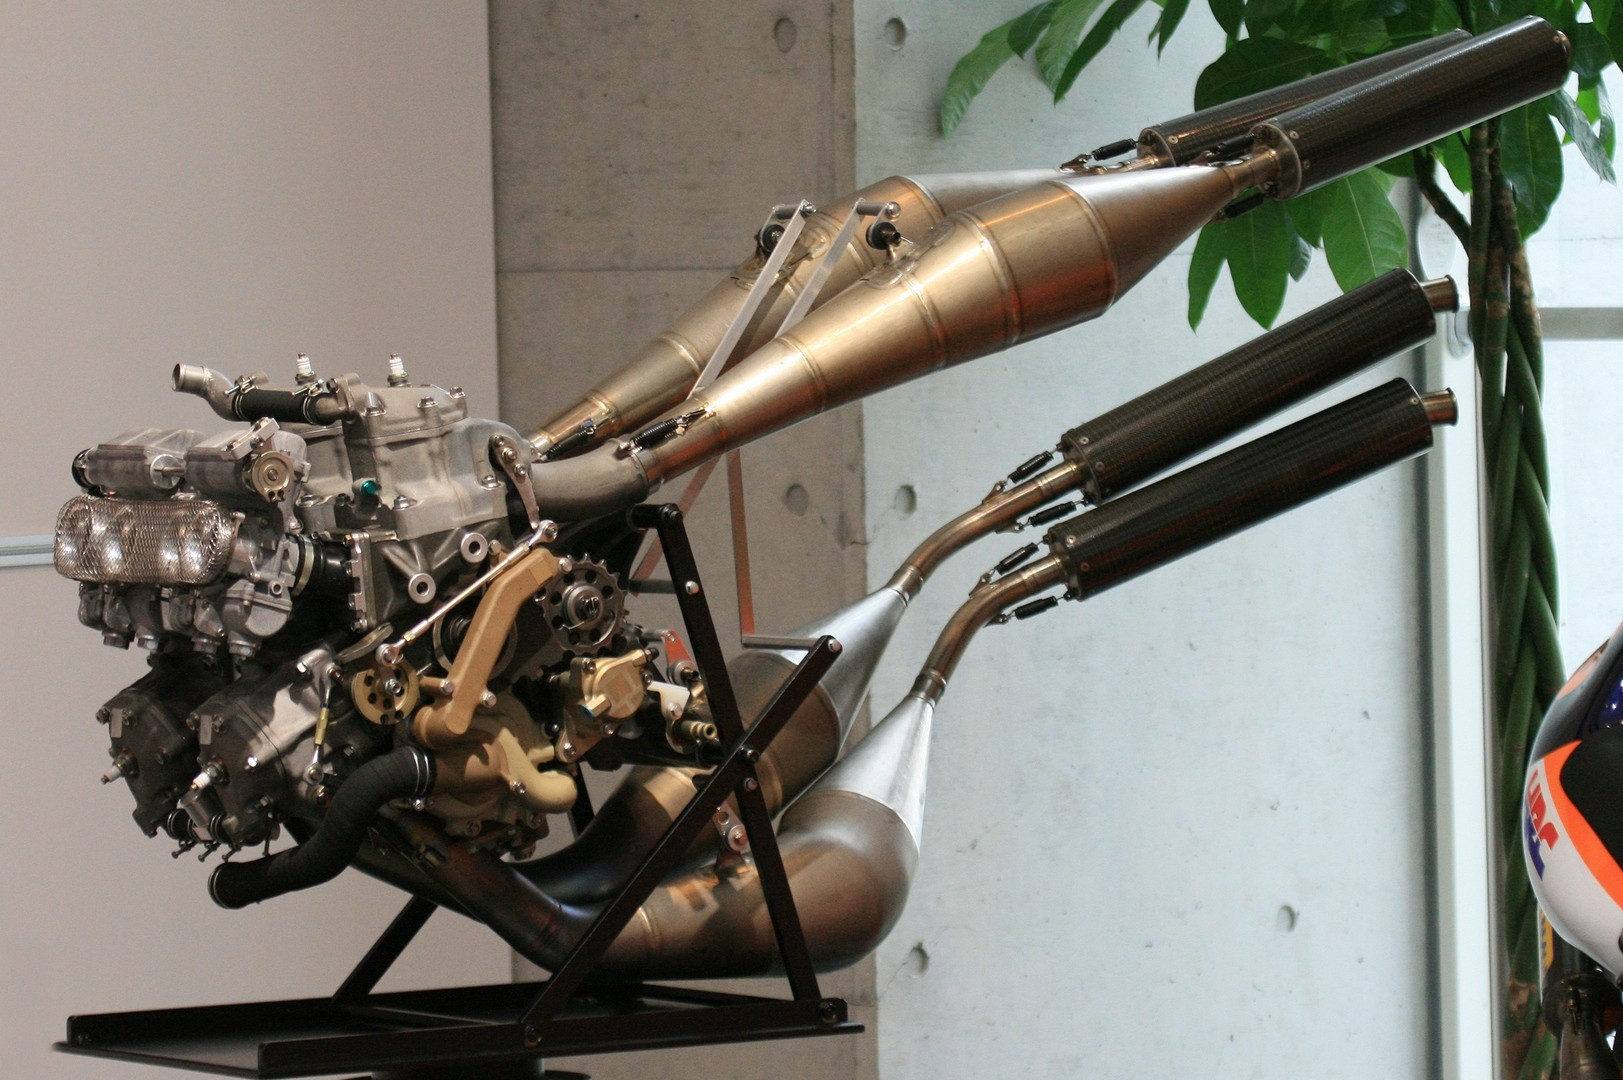 Honda Rumored to Work on a New Two-Stroke Engine, But ...